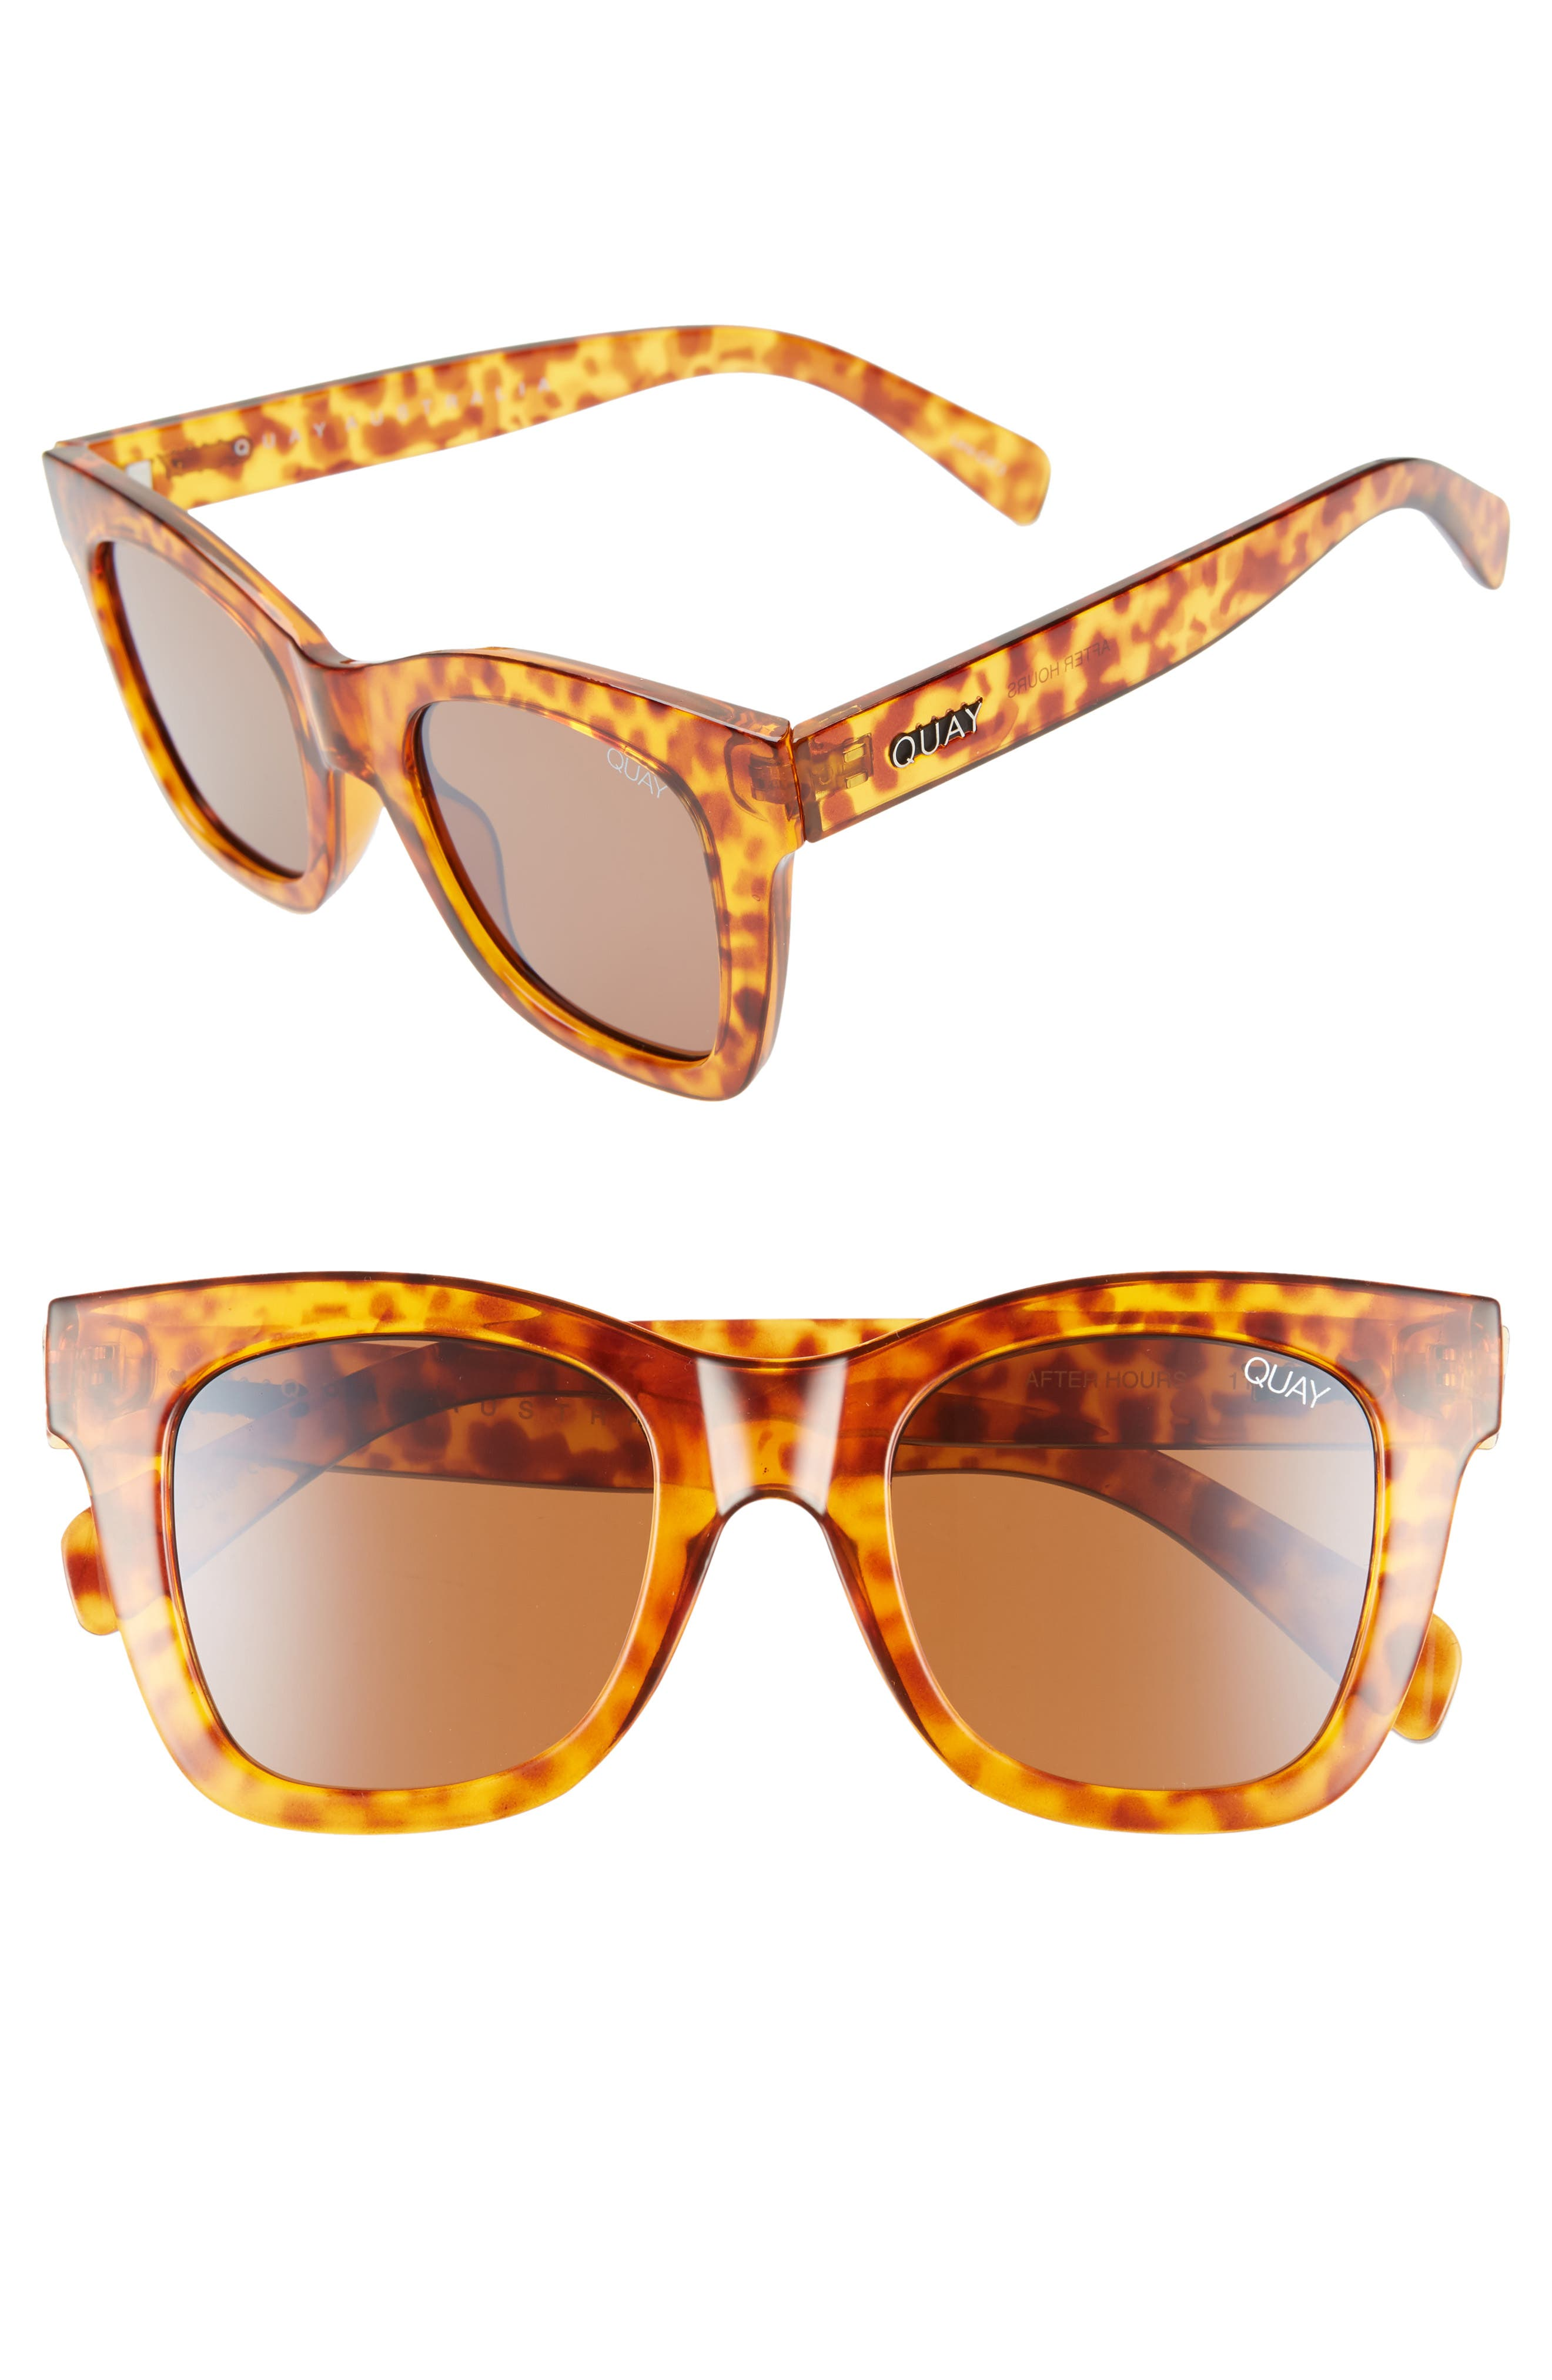 QUAY AUSTRALIA, After Hours 50mm Square Sunglasses, Main thumbnail 1, color, ORANGE TORT / BROWN